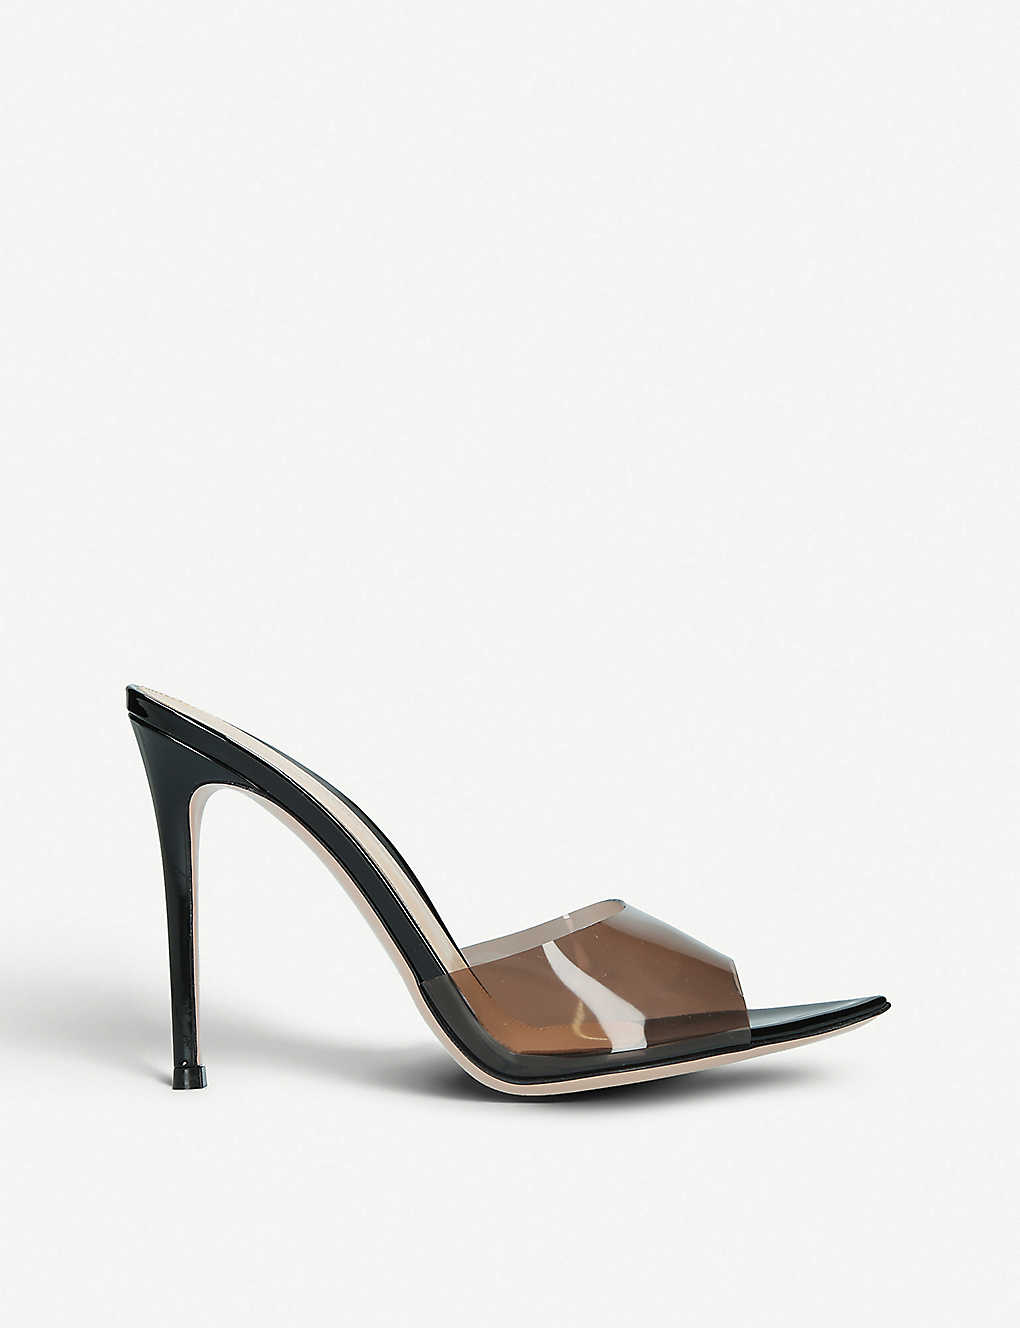 39c6e2b6cd7 GIANVITO ROSSI - Elle 105 leather and PVC mules